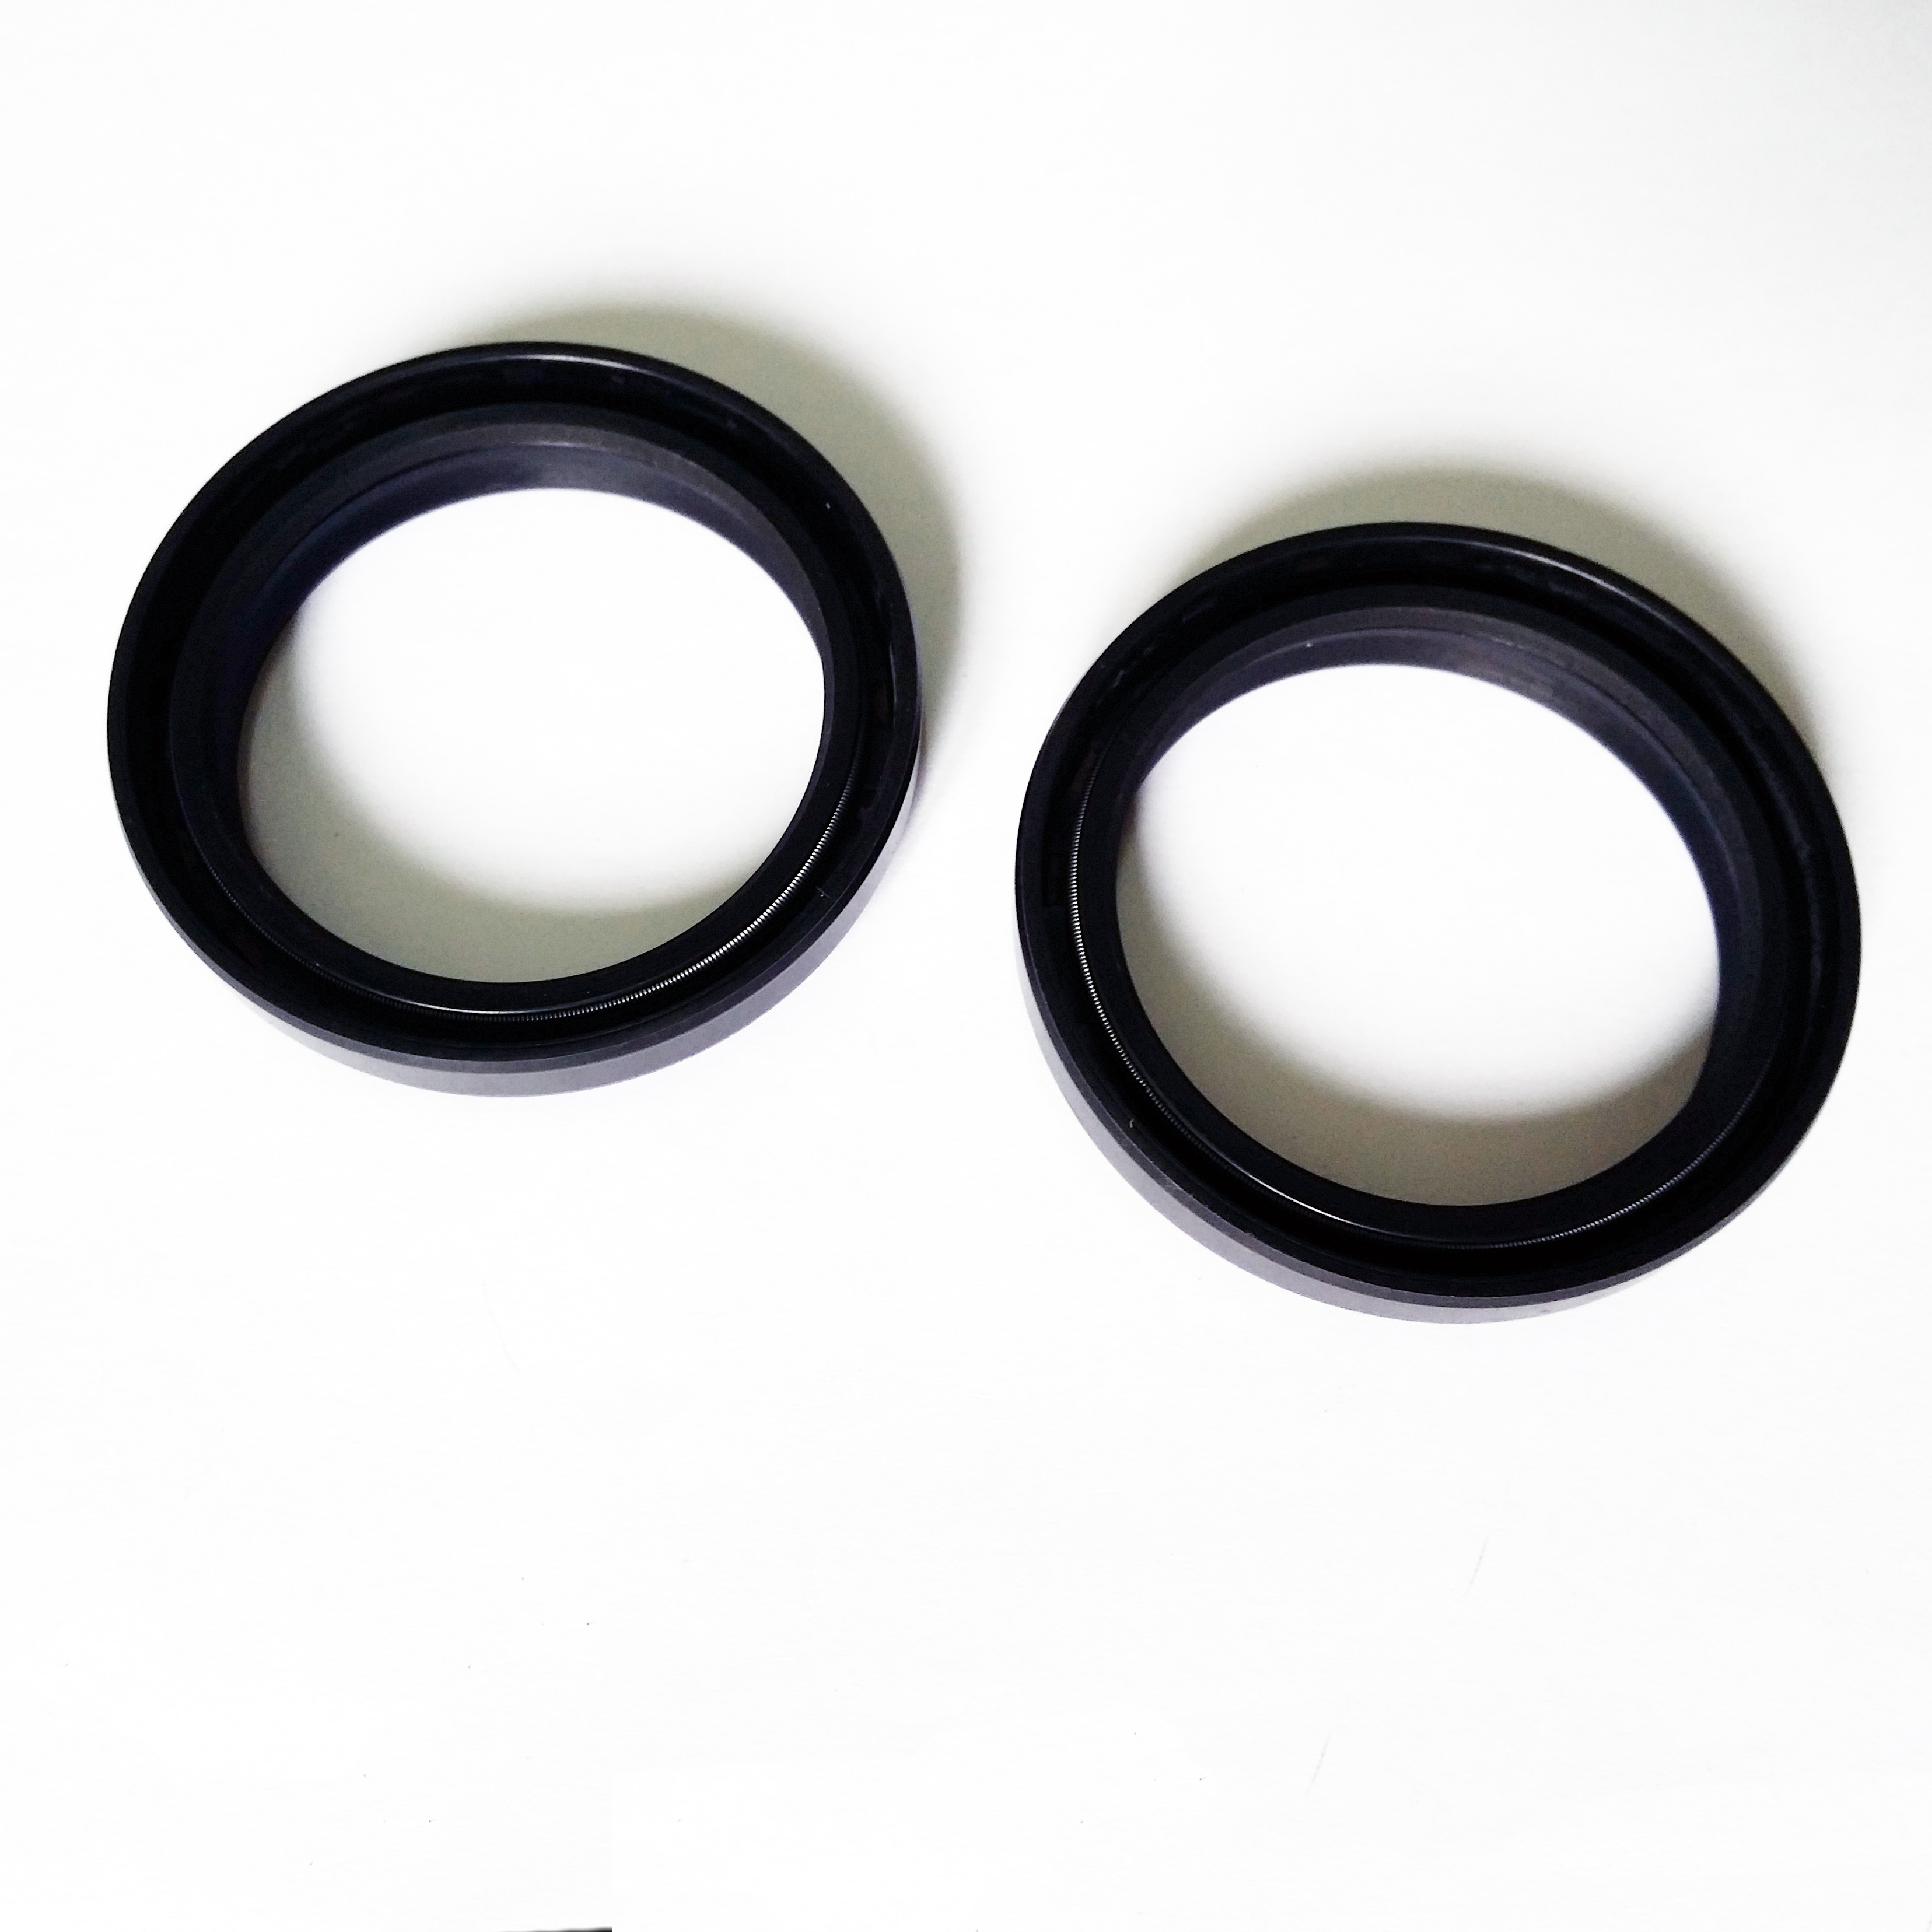 K-Tech TM MX250   2007-2012 NOK Front Fork Oil Seals 50x63x11mm